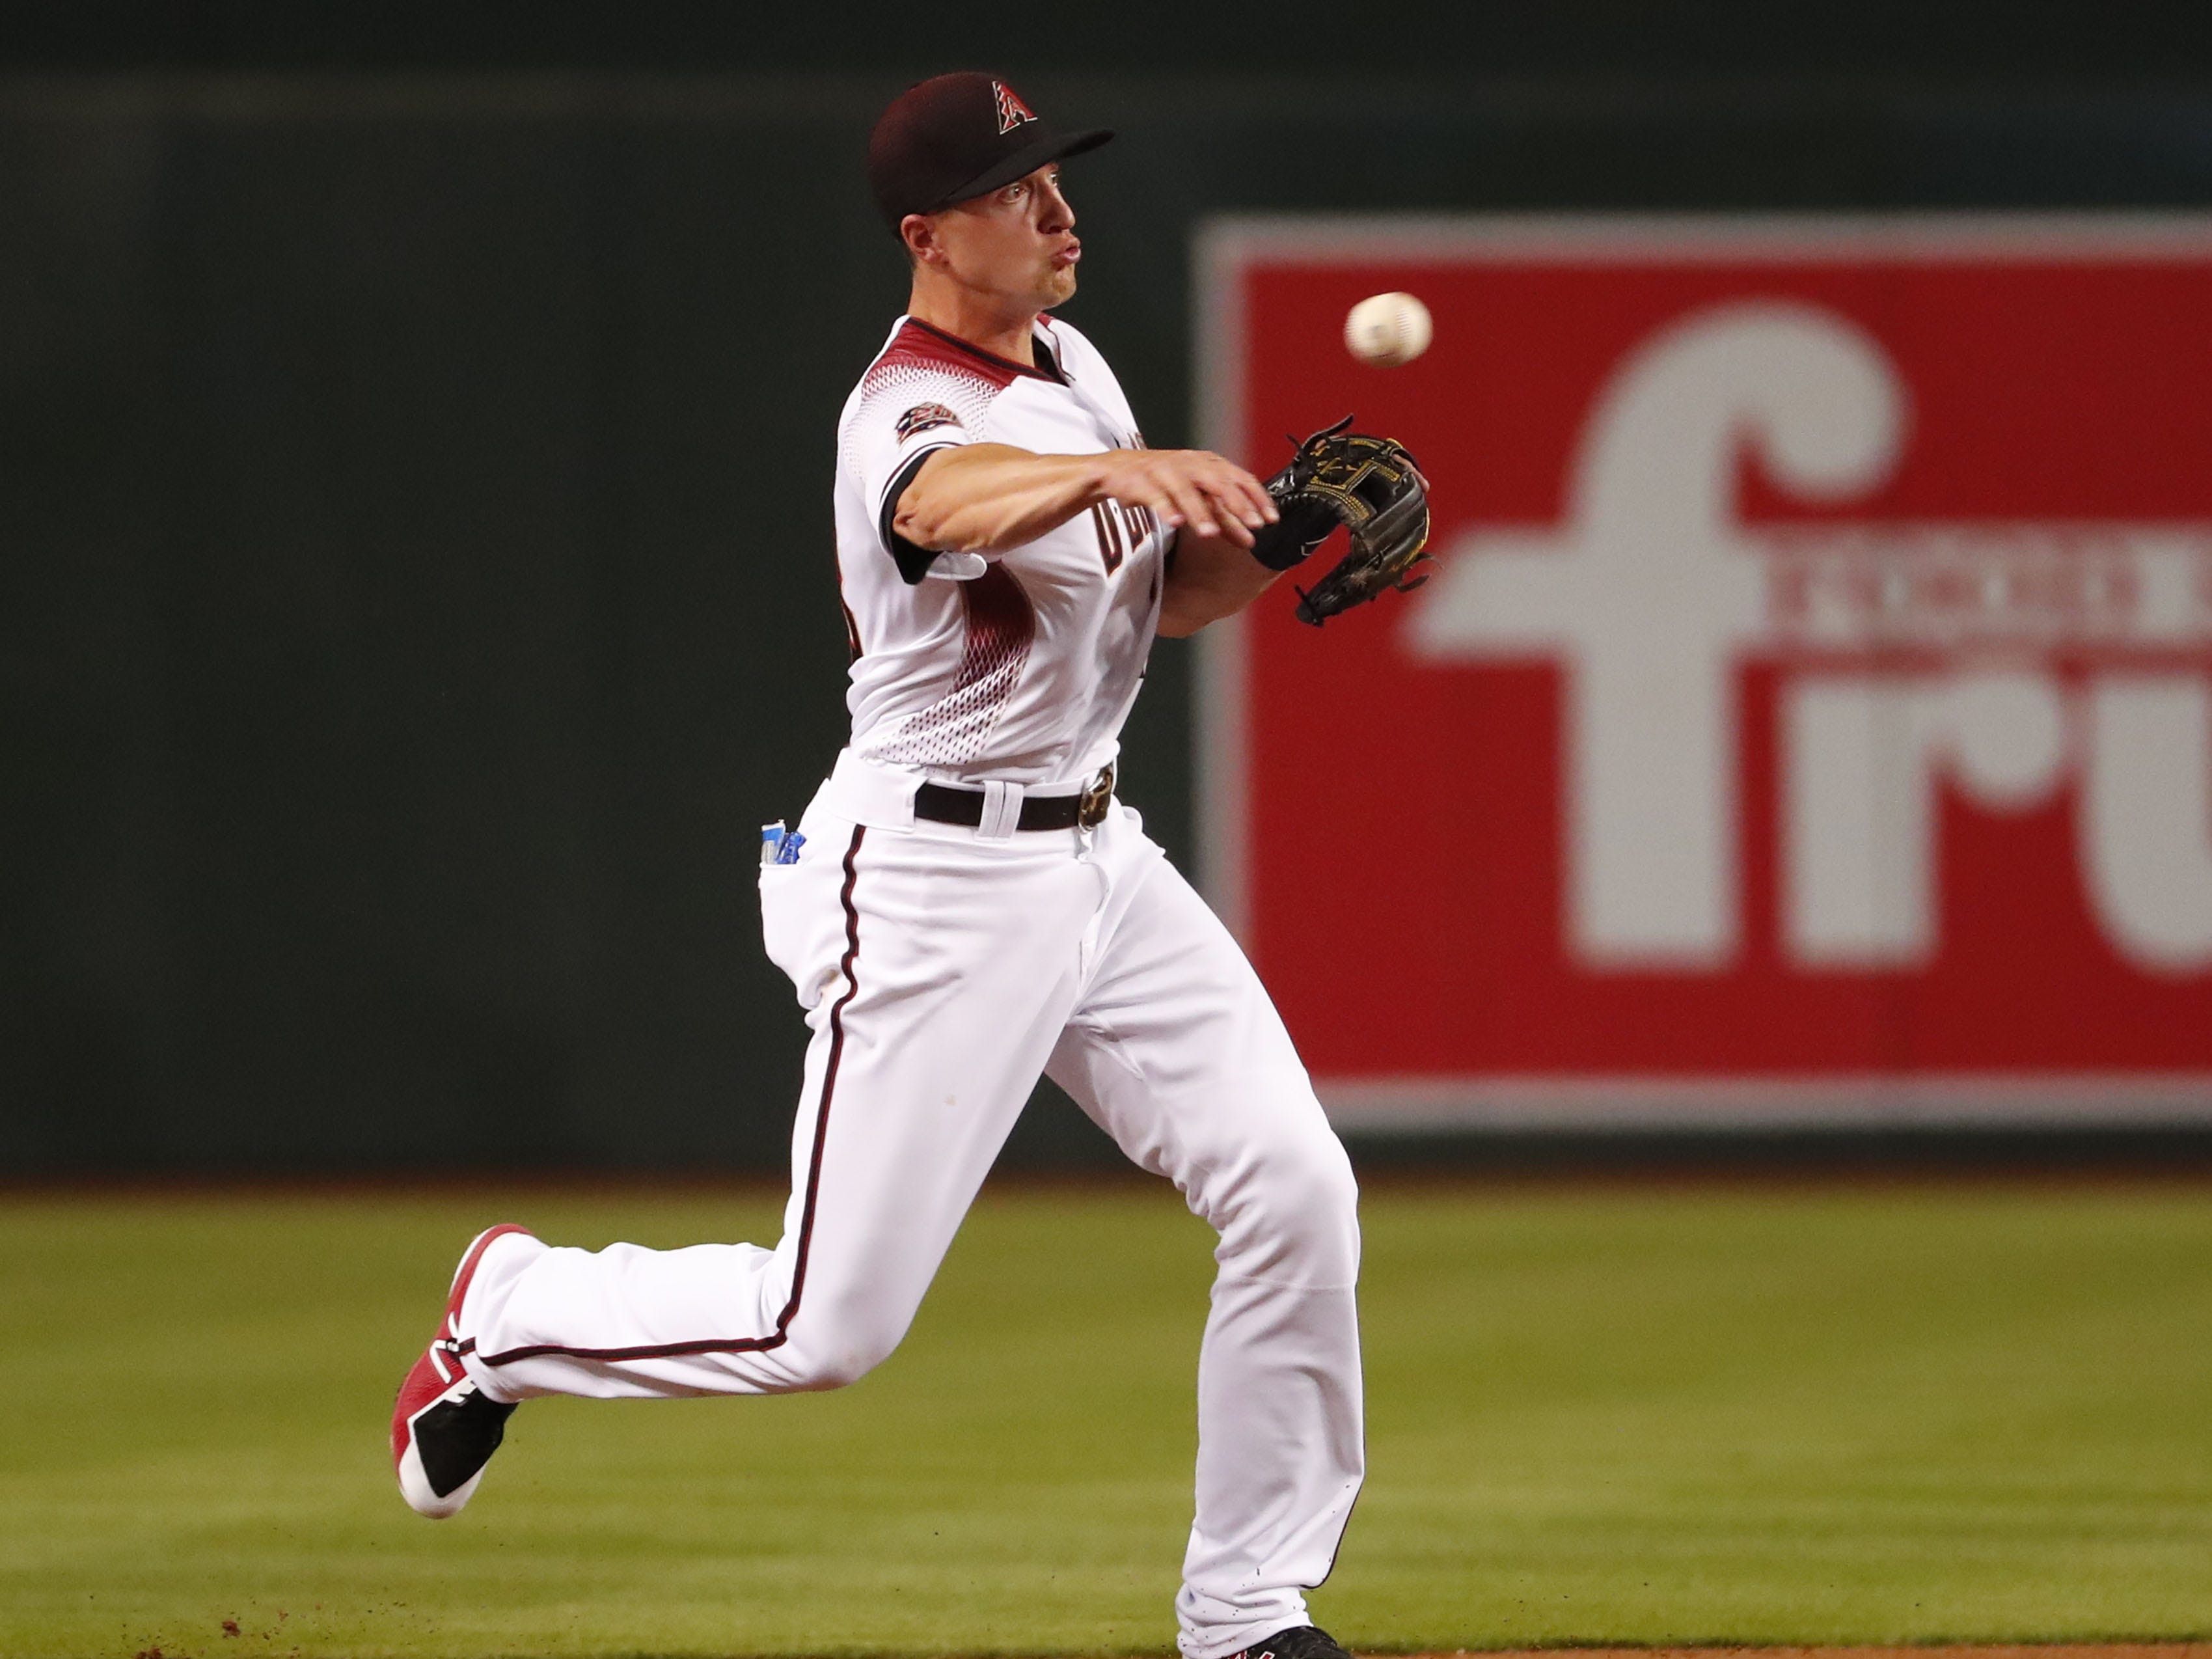 Nick Ahmed's journey from lightly recruited shortstop to Gold Glove finalist